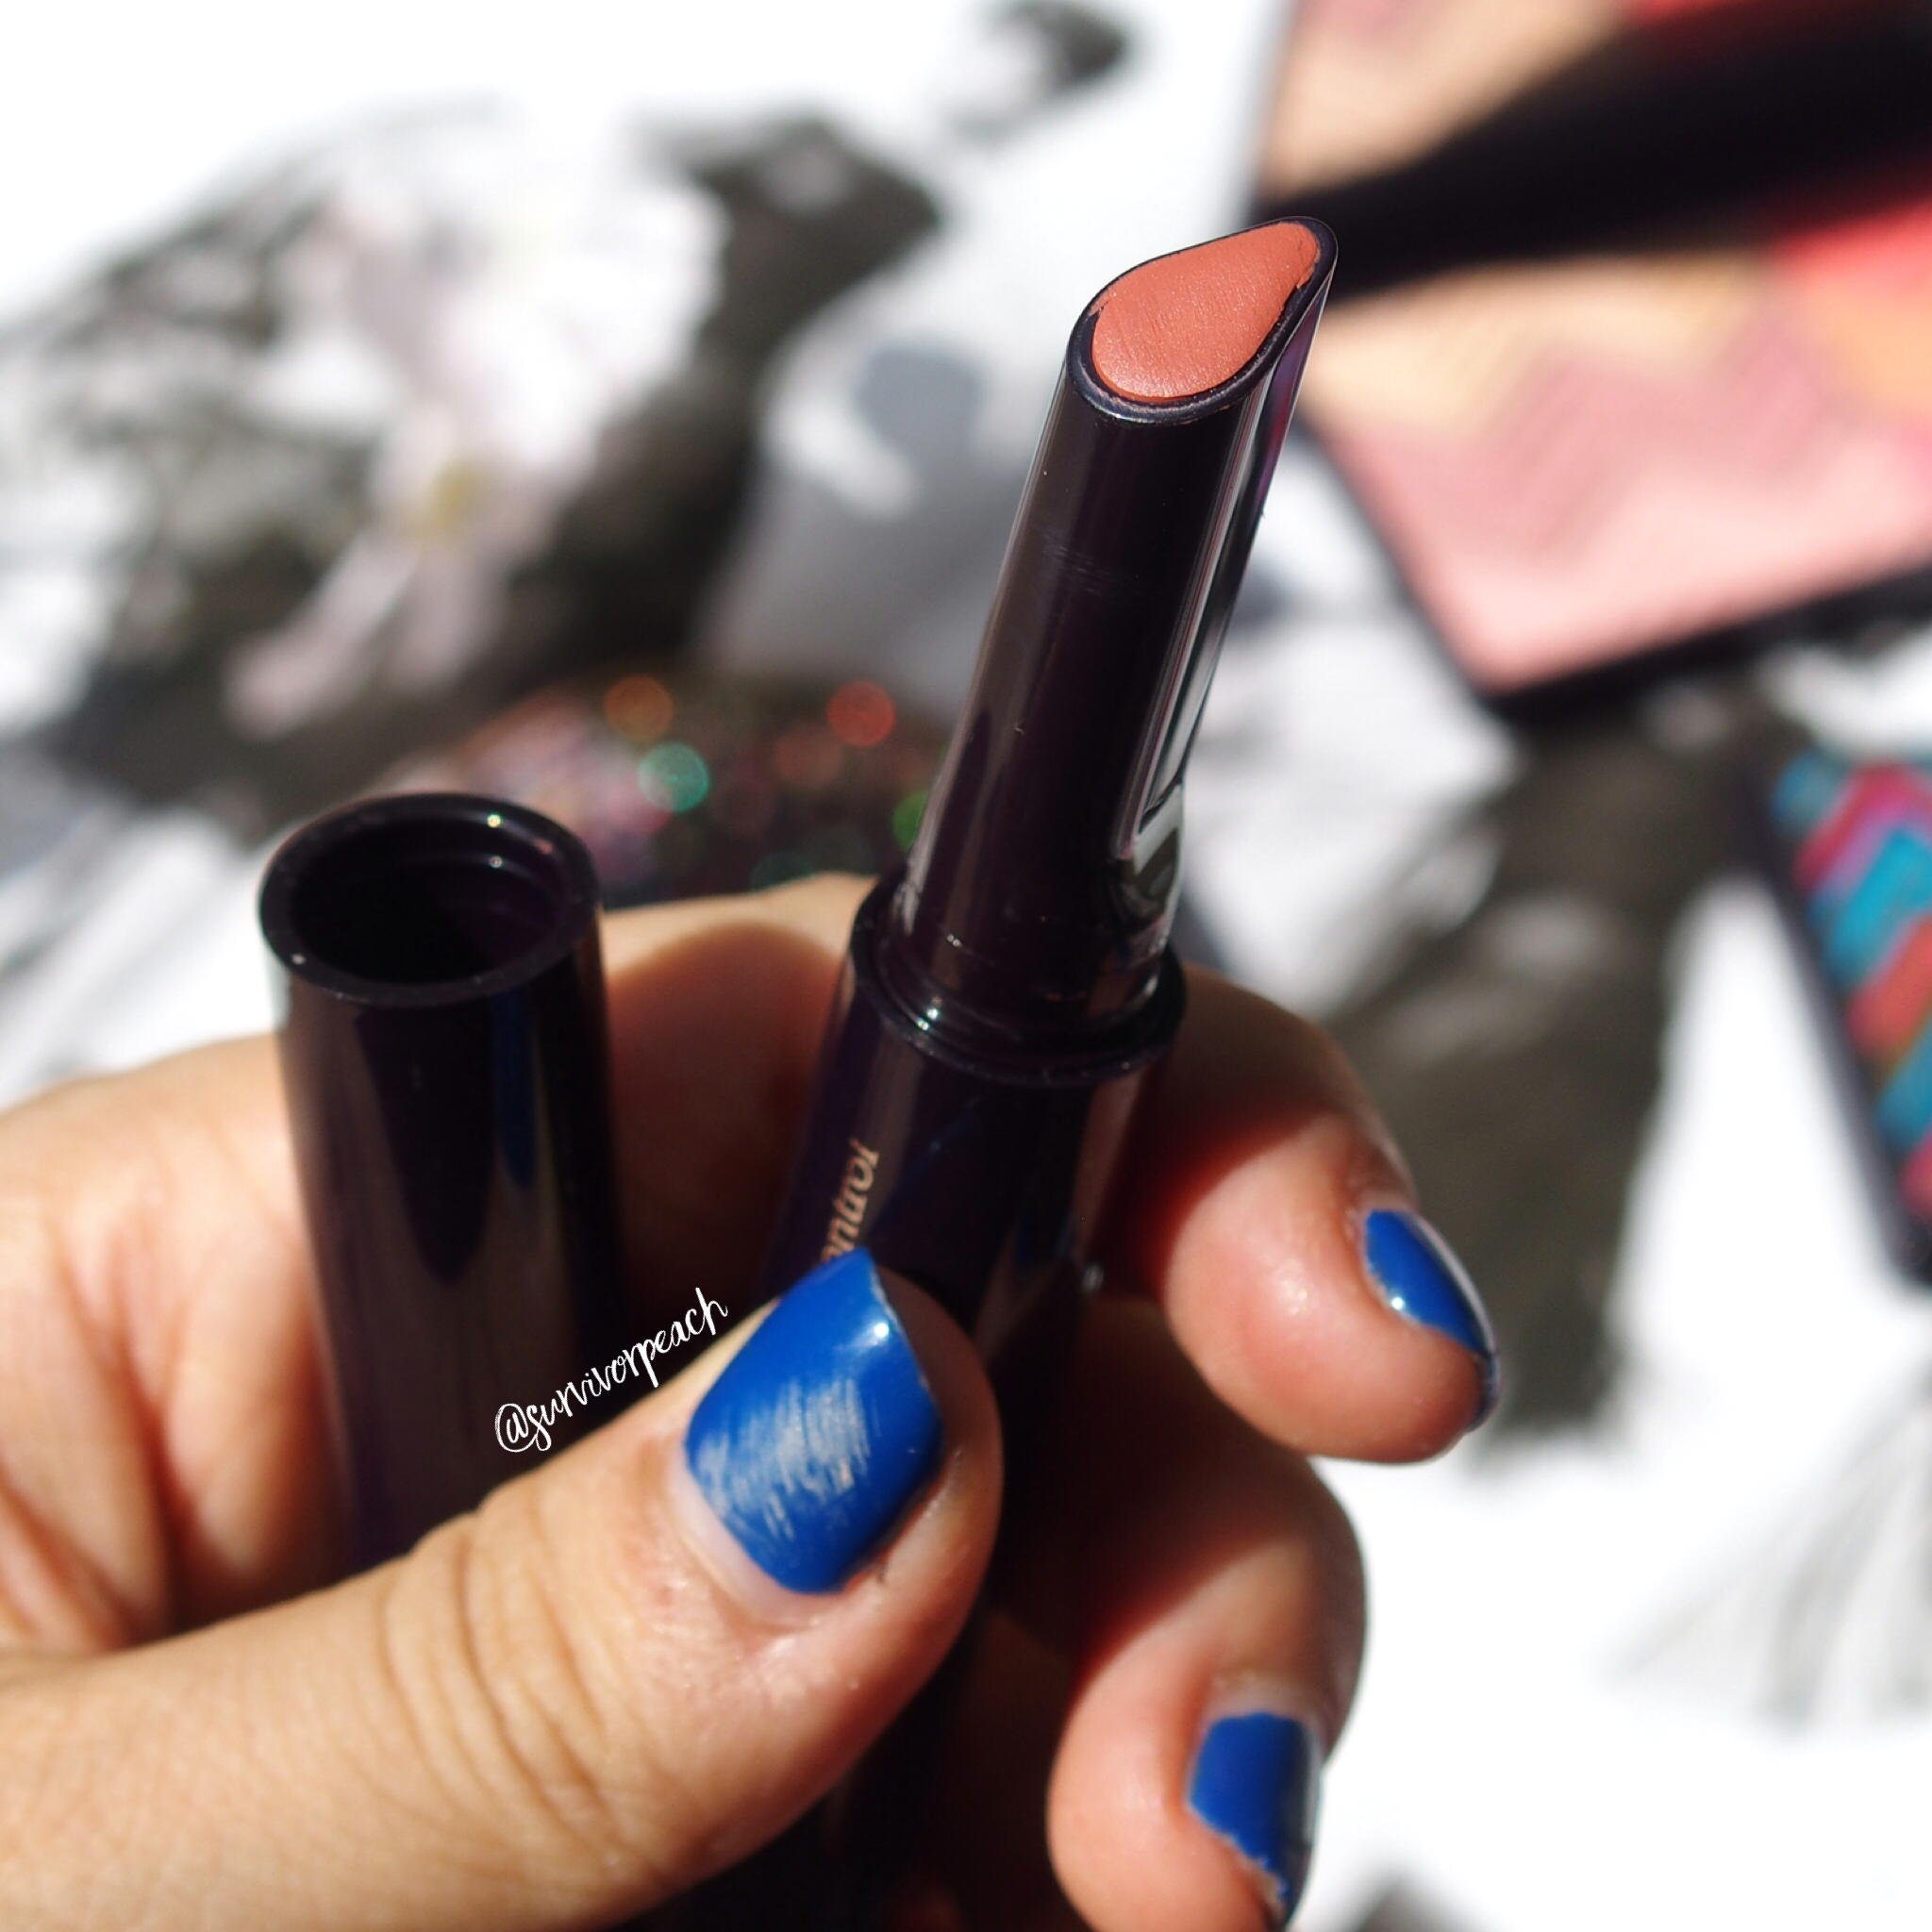 Rouge Expert Click sticks in #12 Naked Nectar.